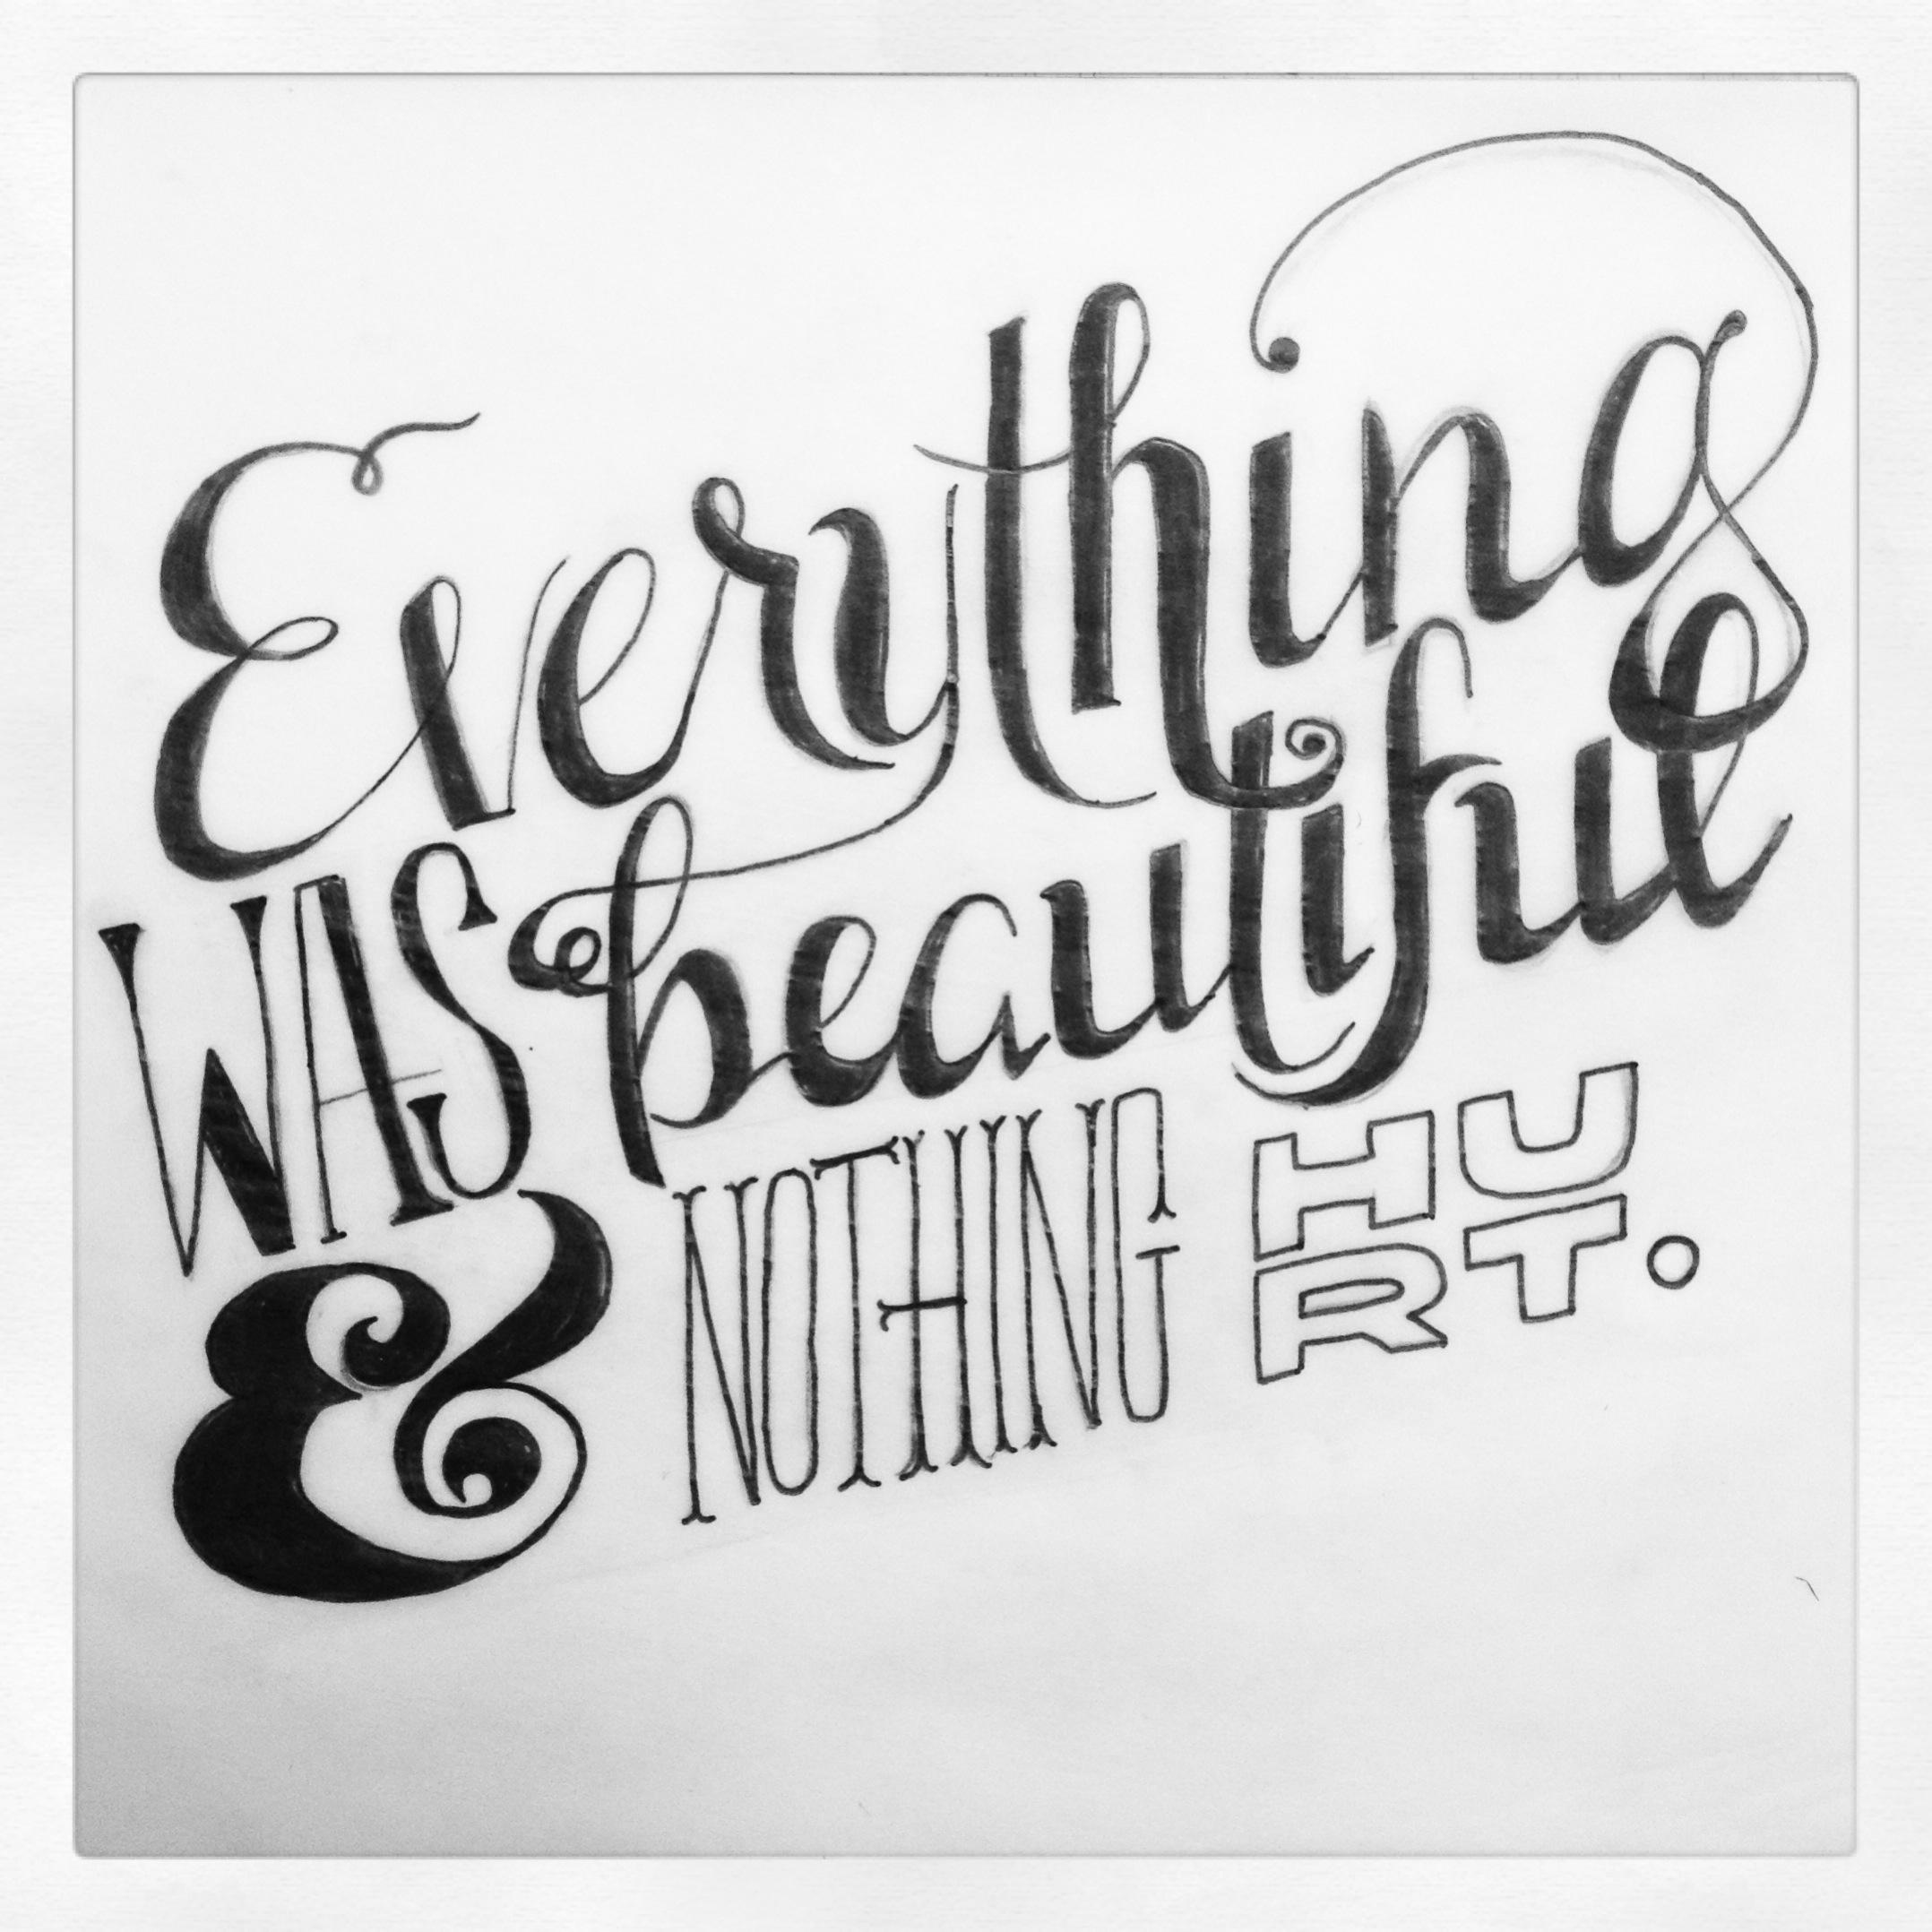 Everything was beautiful & nothing hurt. - image 3 - student project